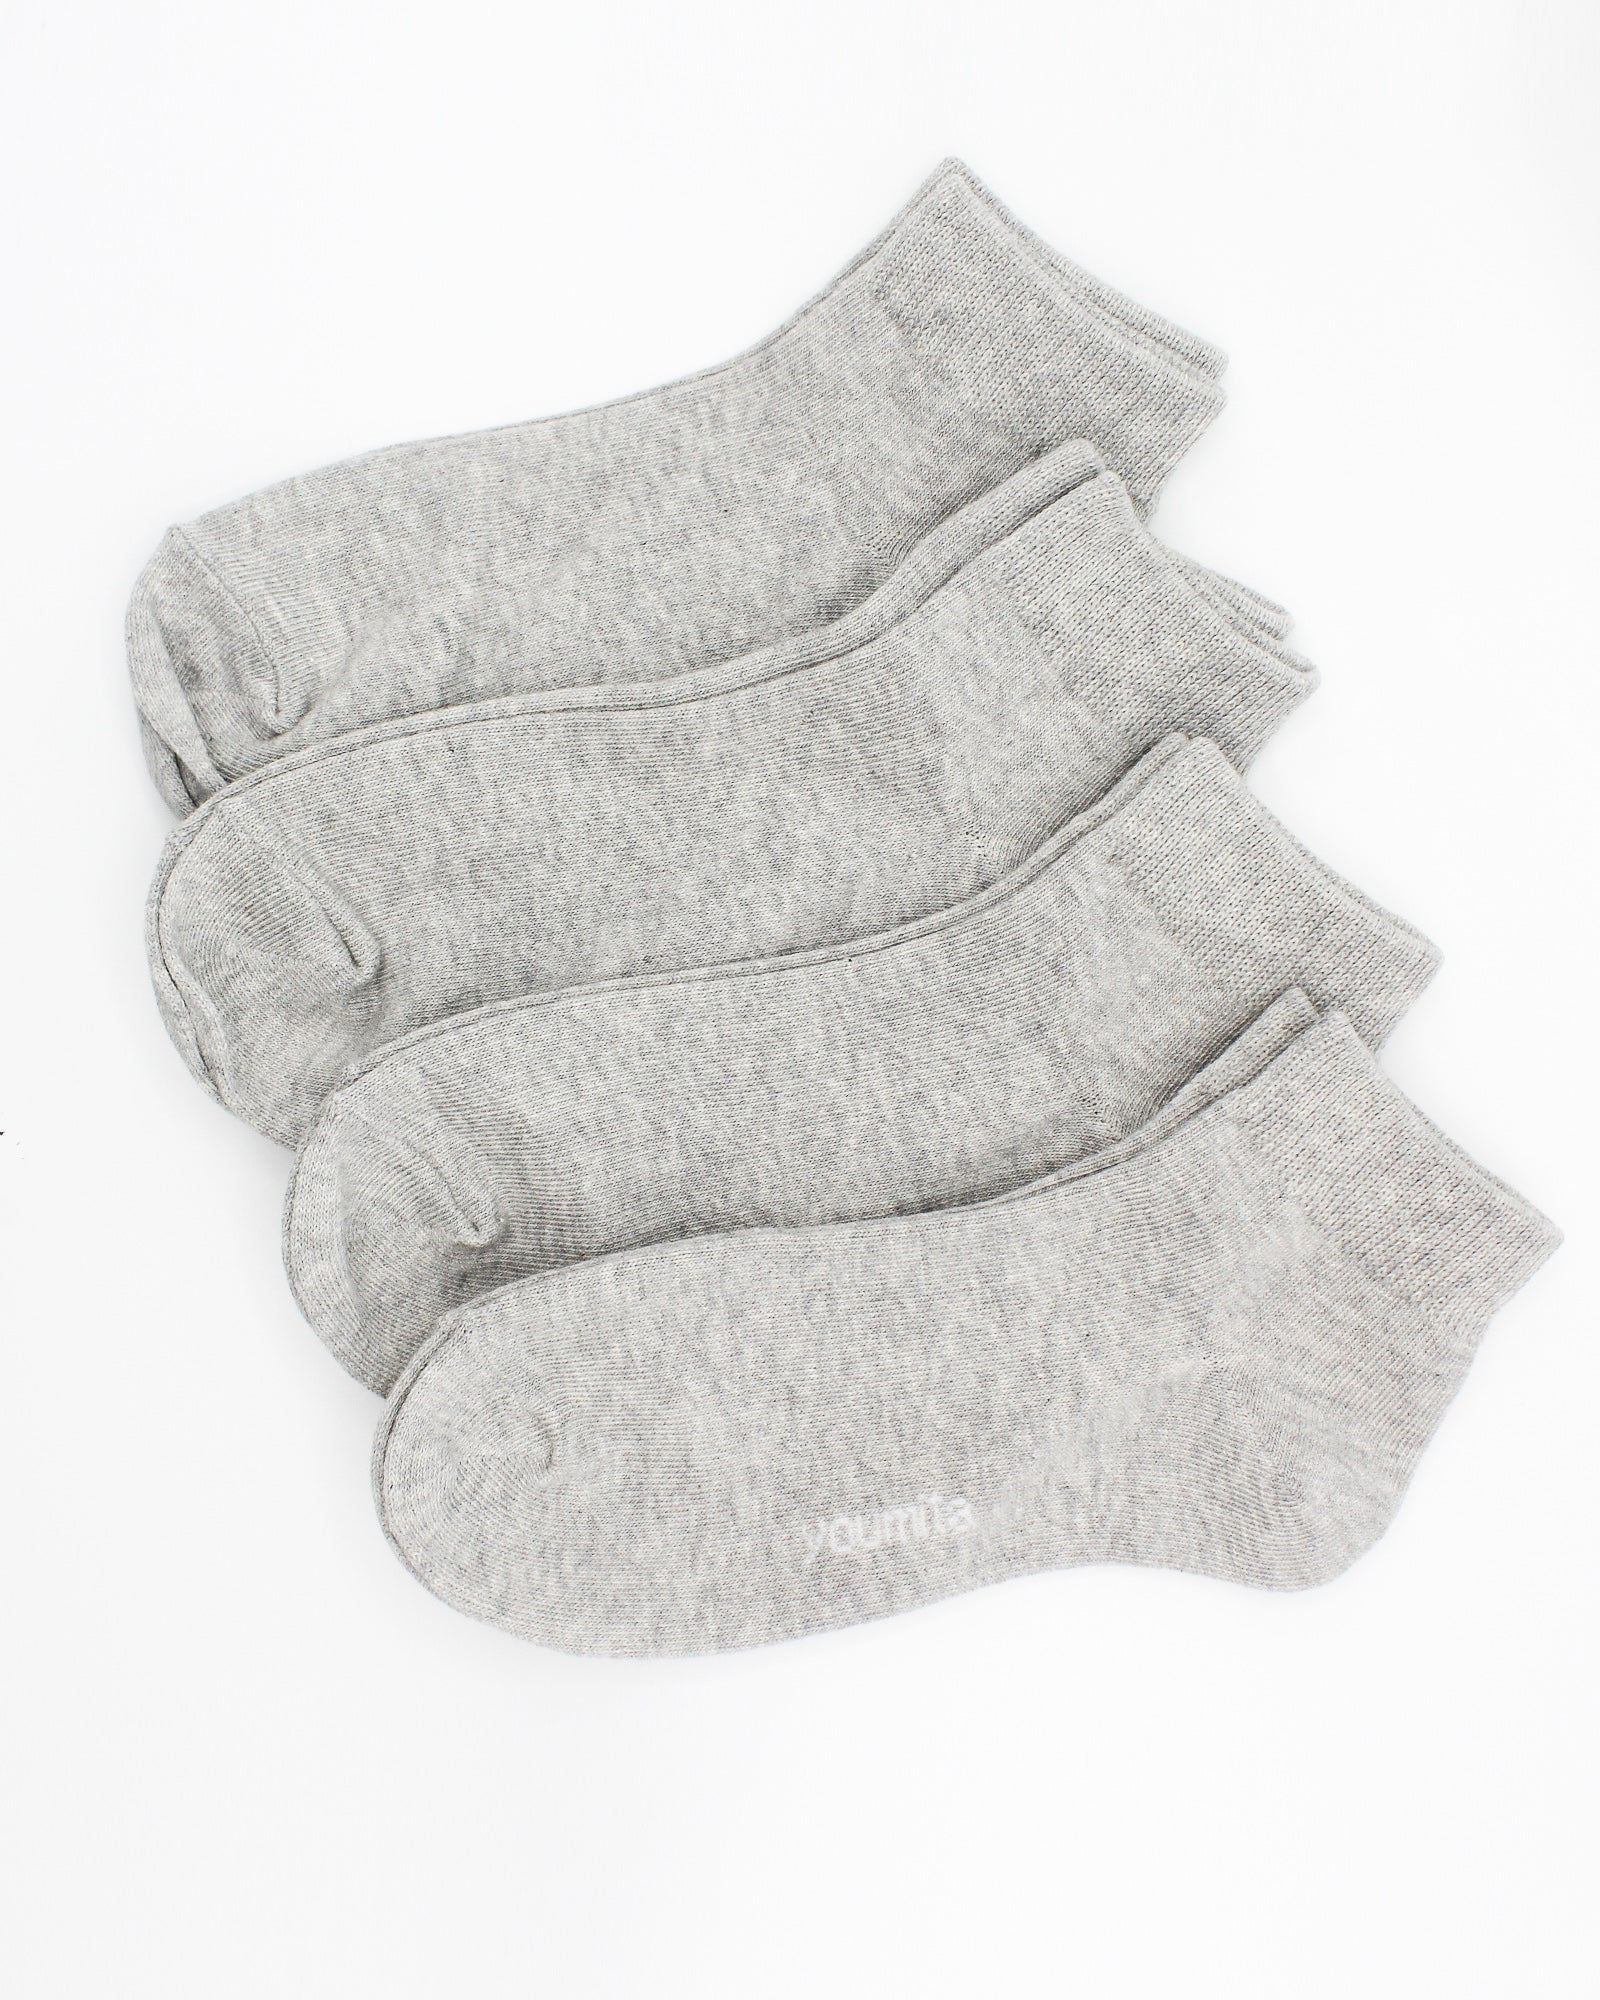 Movements in Life Anklet Socks (Grey)